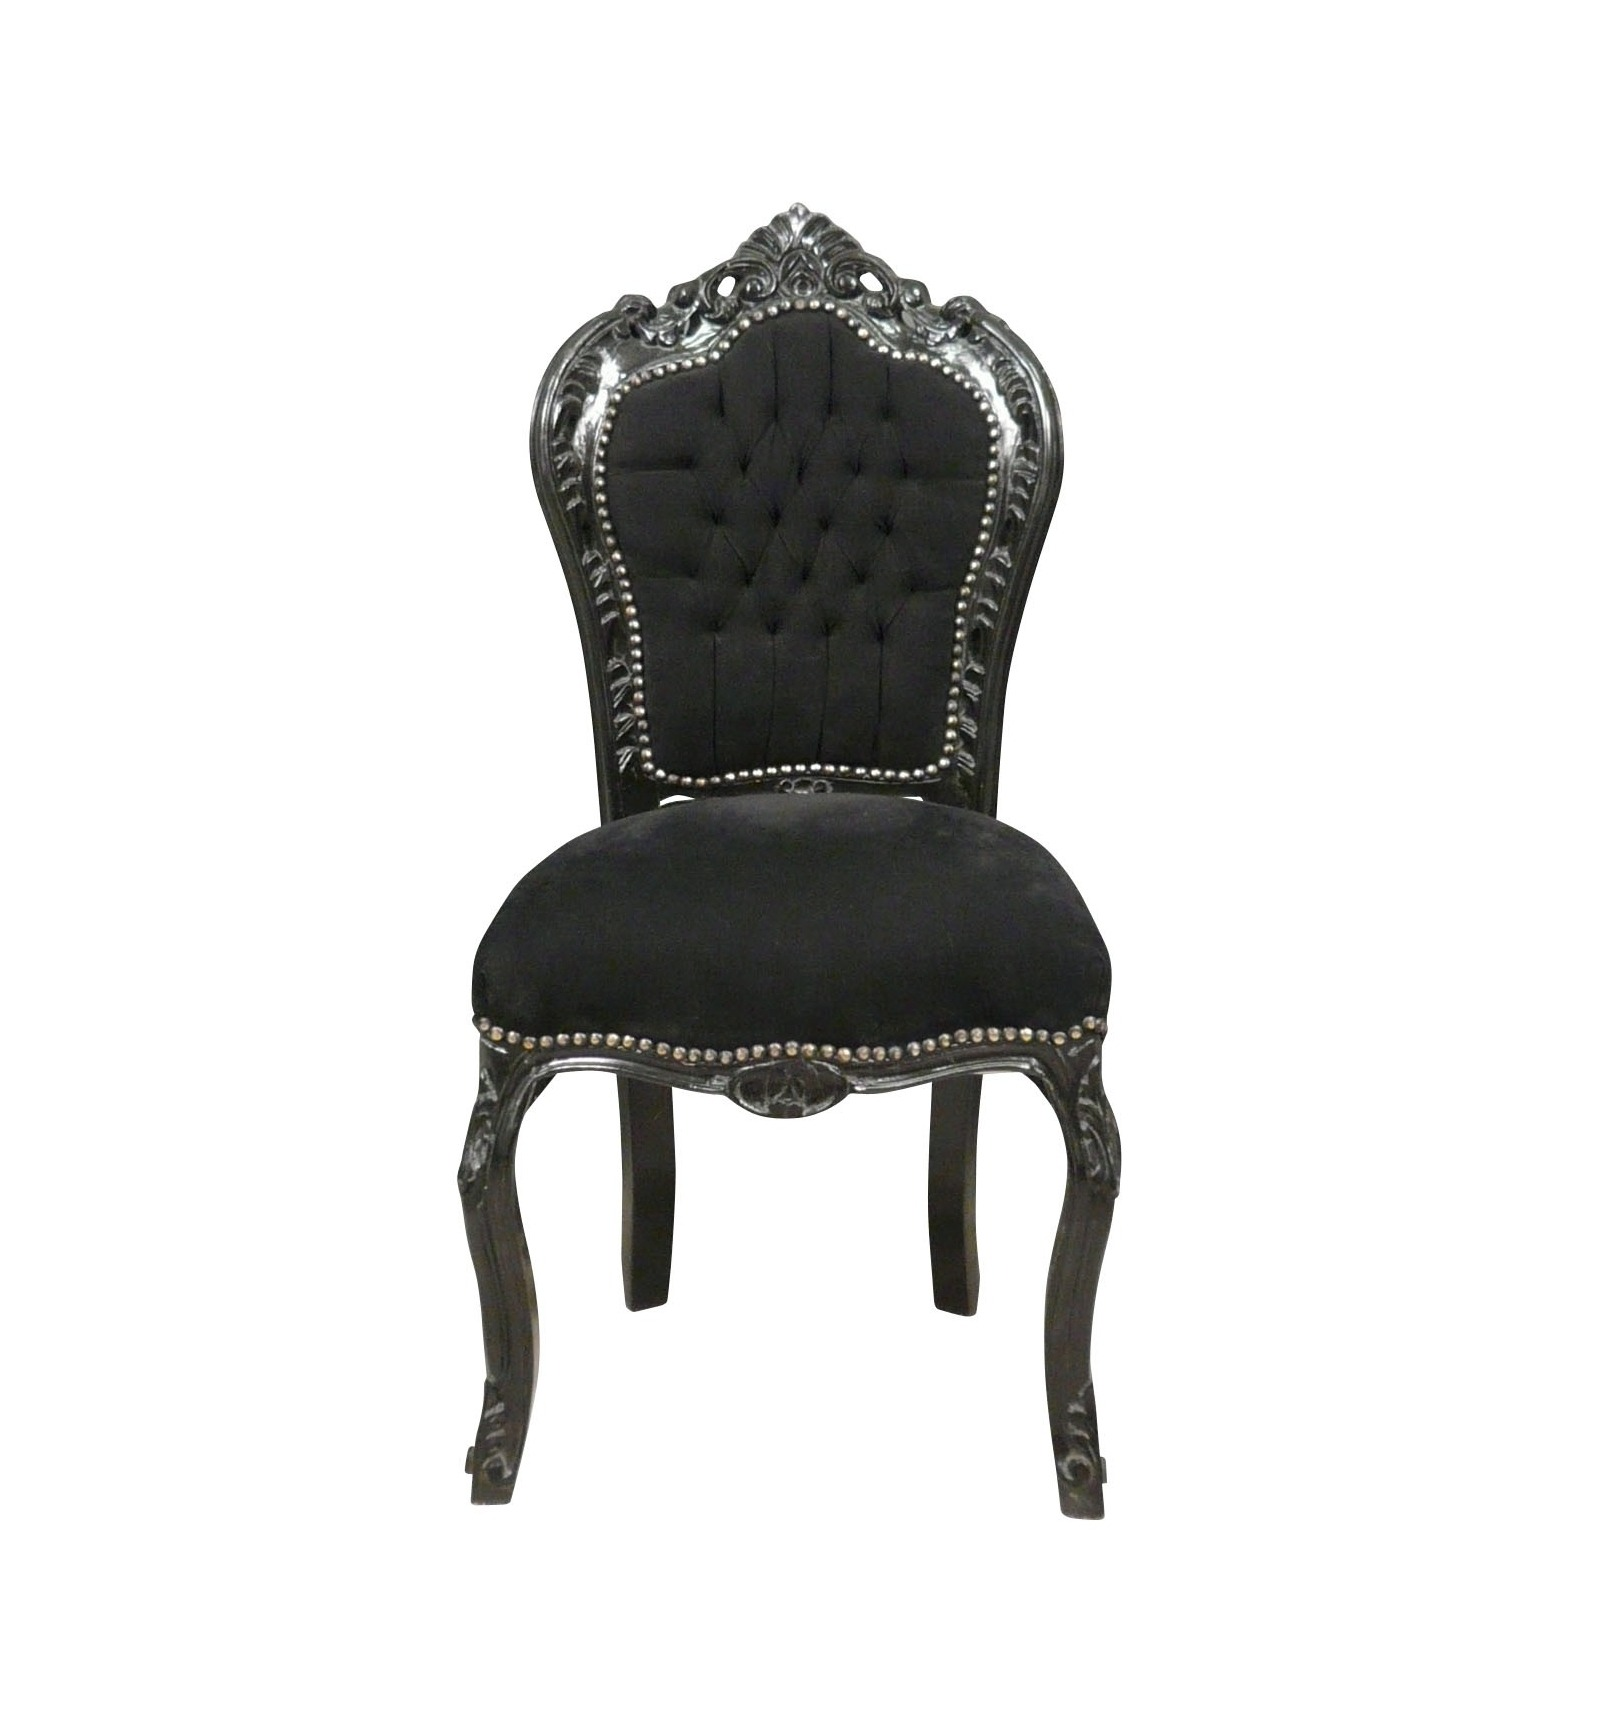 chaise baroque noire pas ch re mobilier baroque. Black Bedroom Furniture Sets. Home Design Ideas